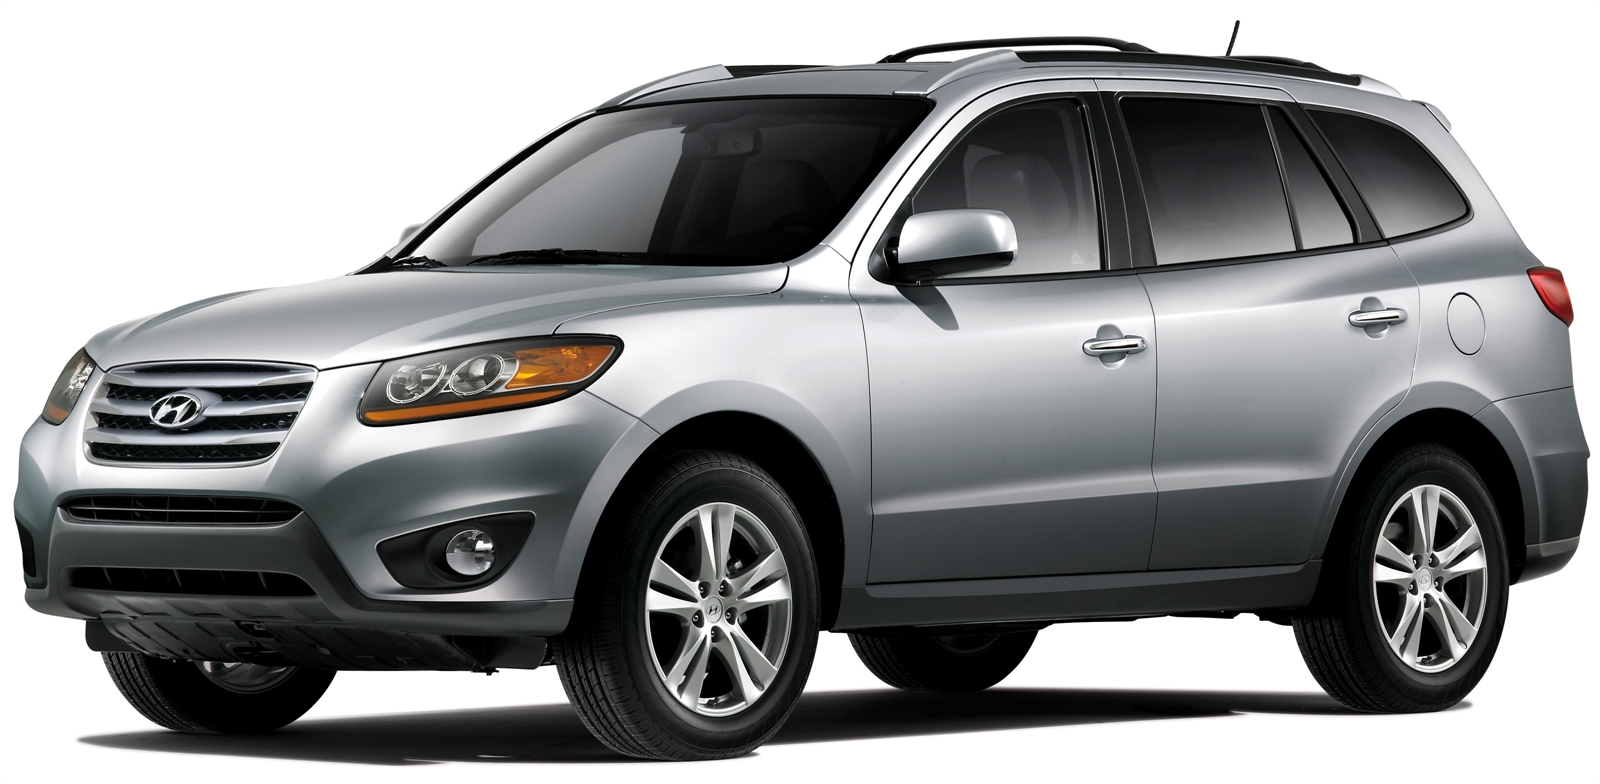 2012 Hyundai Santa Fe Review, Ratings, Specs, Prices, And